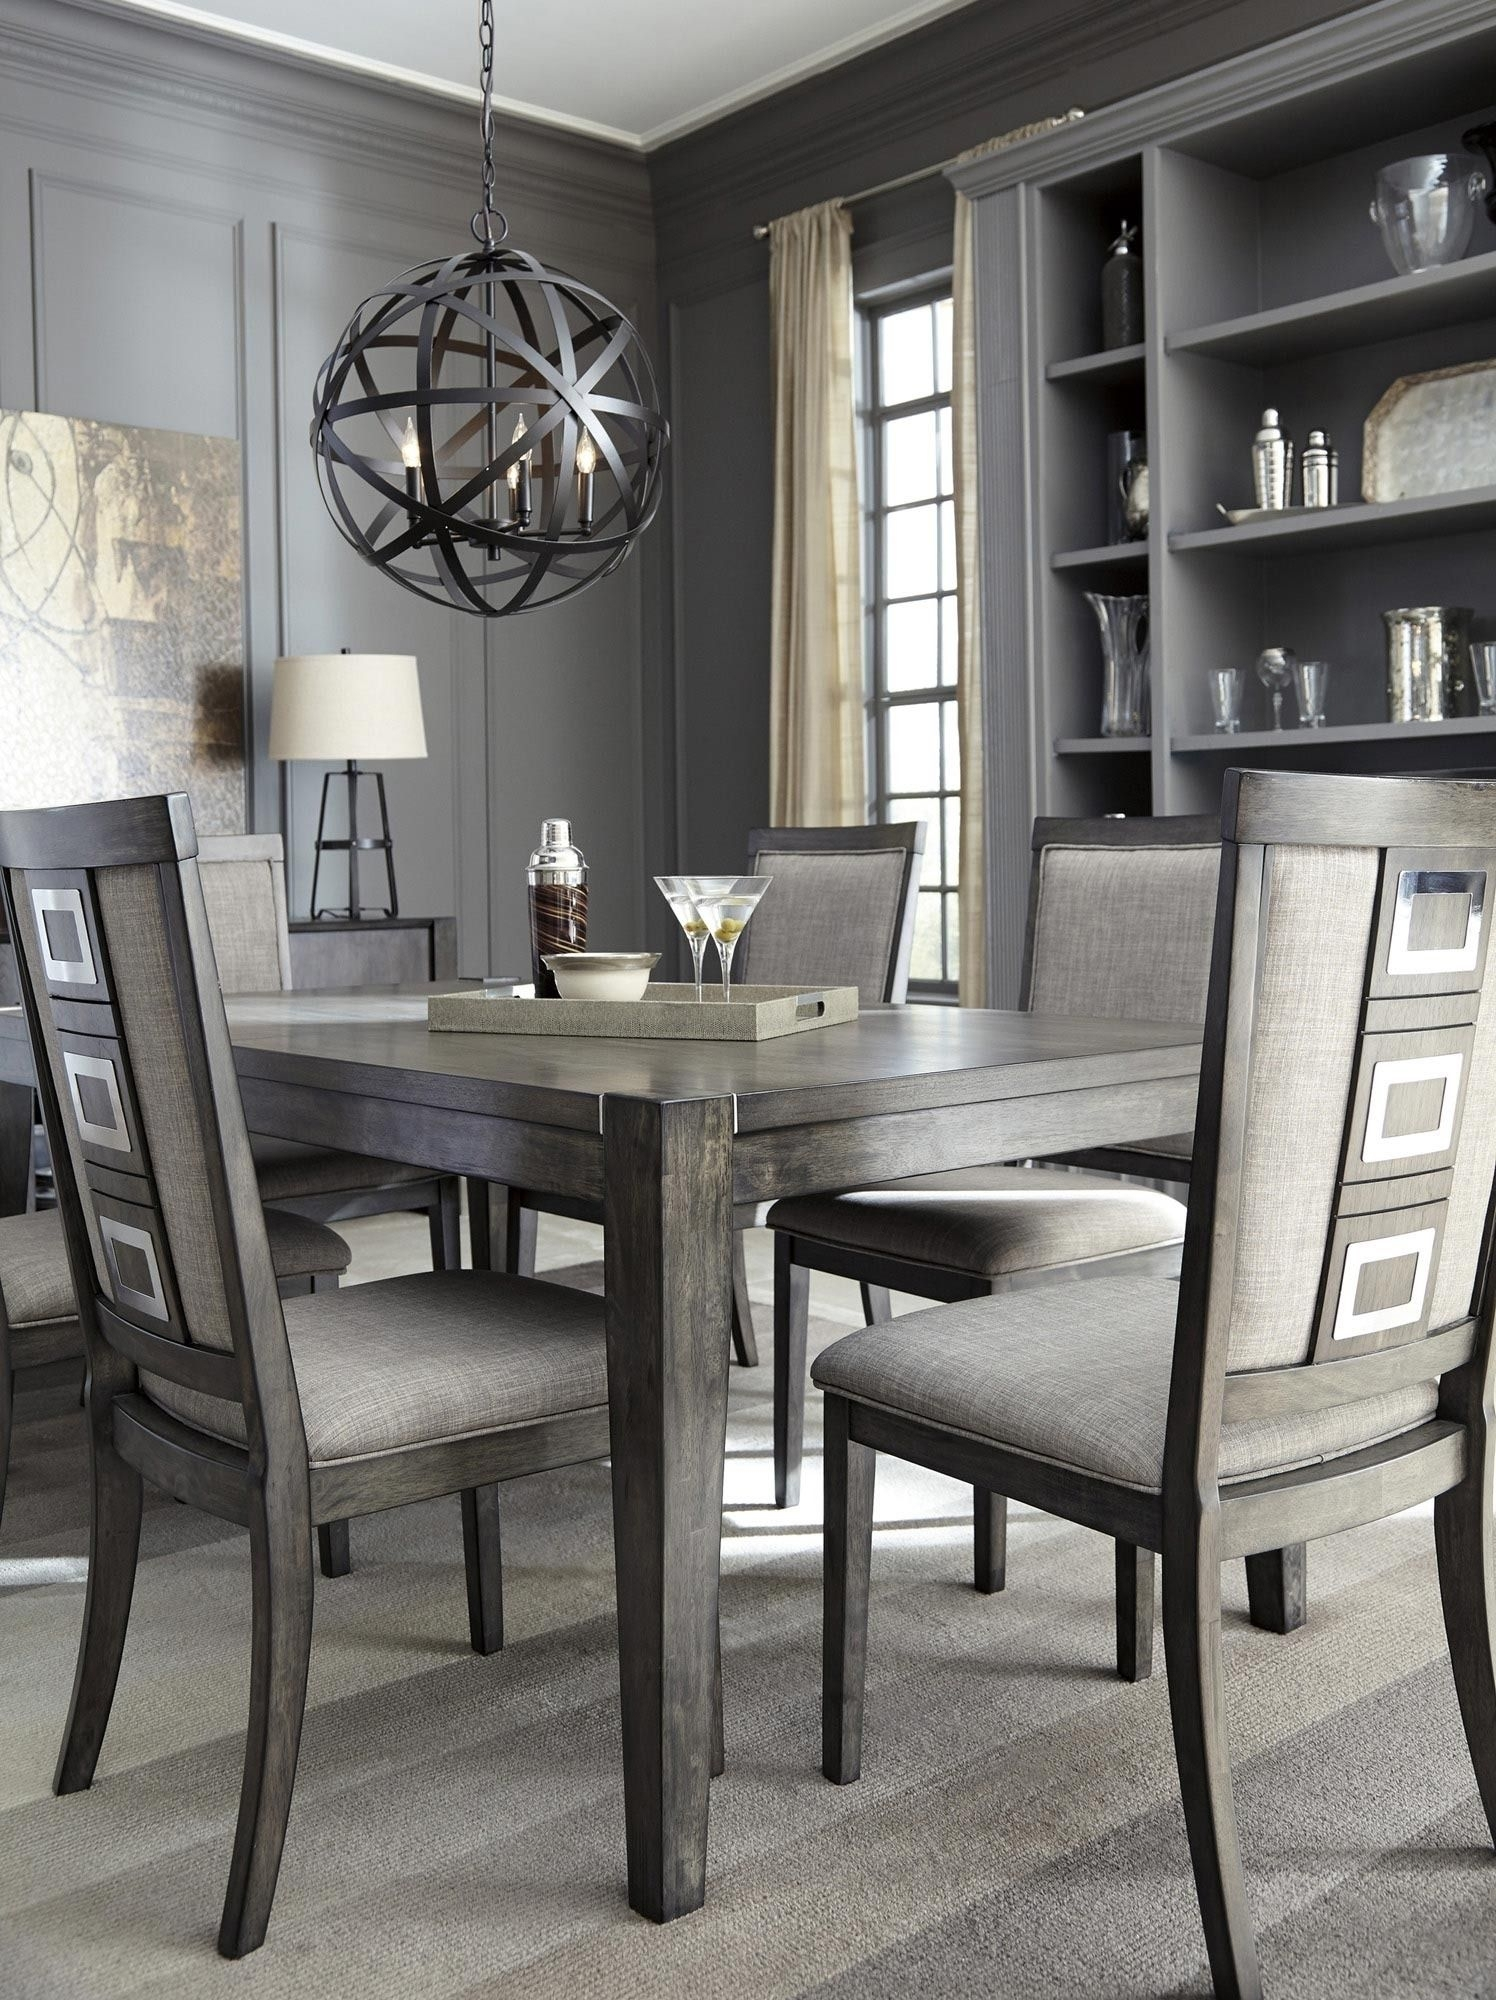 Chadoni Rectangular Dining Room Extension Table In Gray | Ashley For Most Current Candice Ii 7 Piece Extension Rectangle Dining Sets (Image 8 of 20)